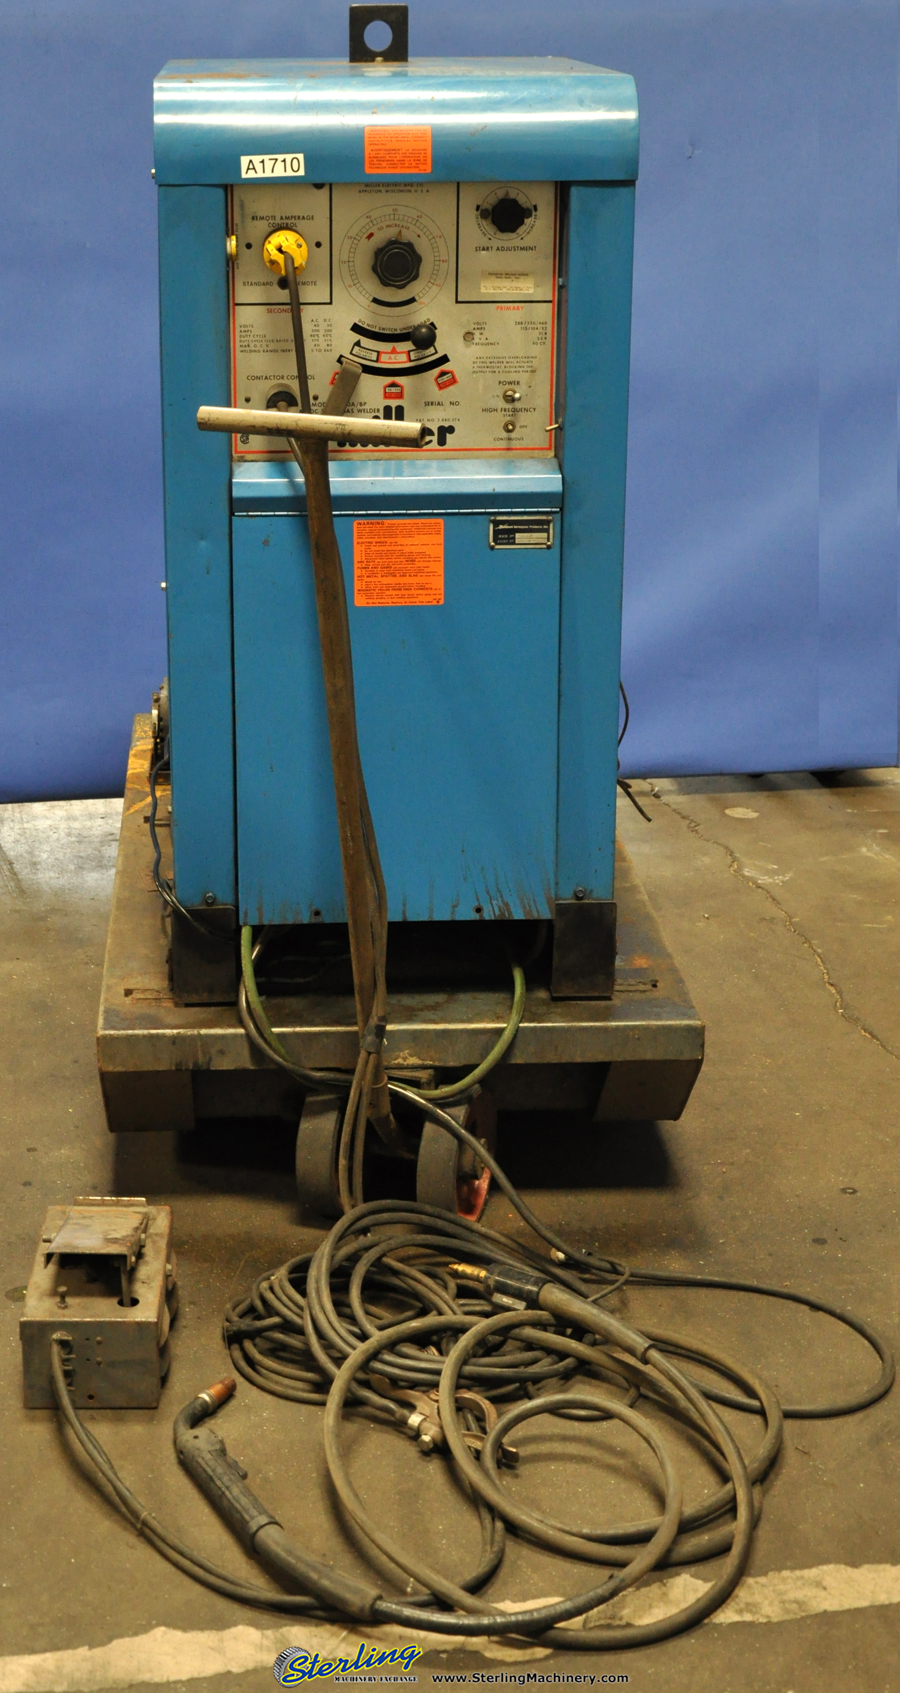 medium resolution of a1710 300 amp used miller tig welder mdl 330 a bp sterling machinery at cita